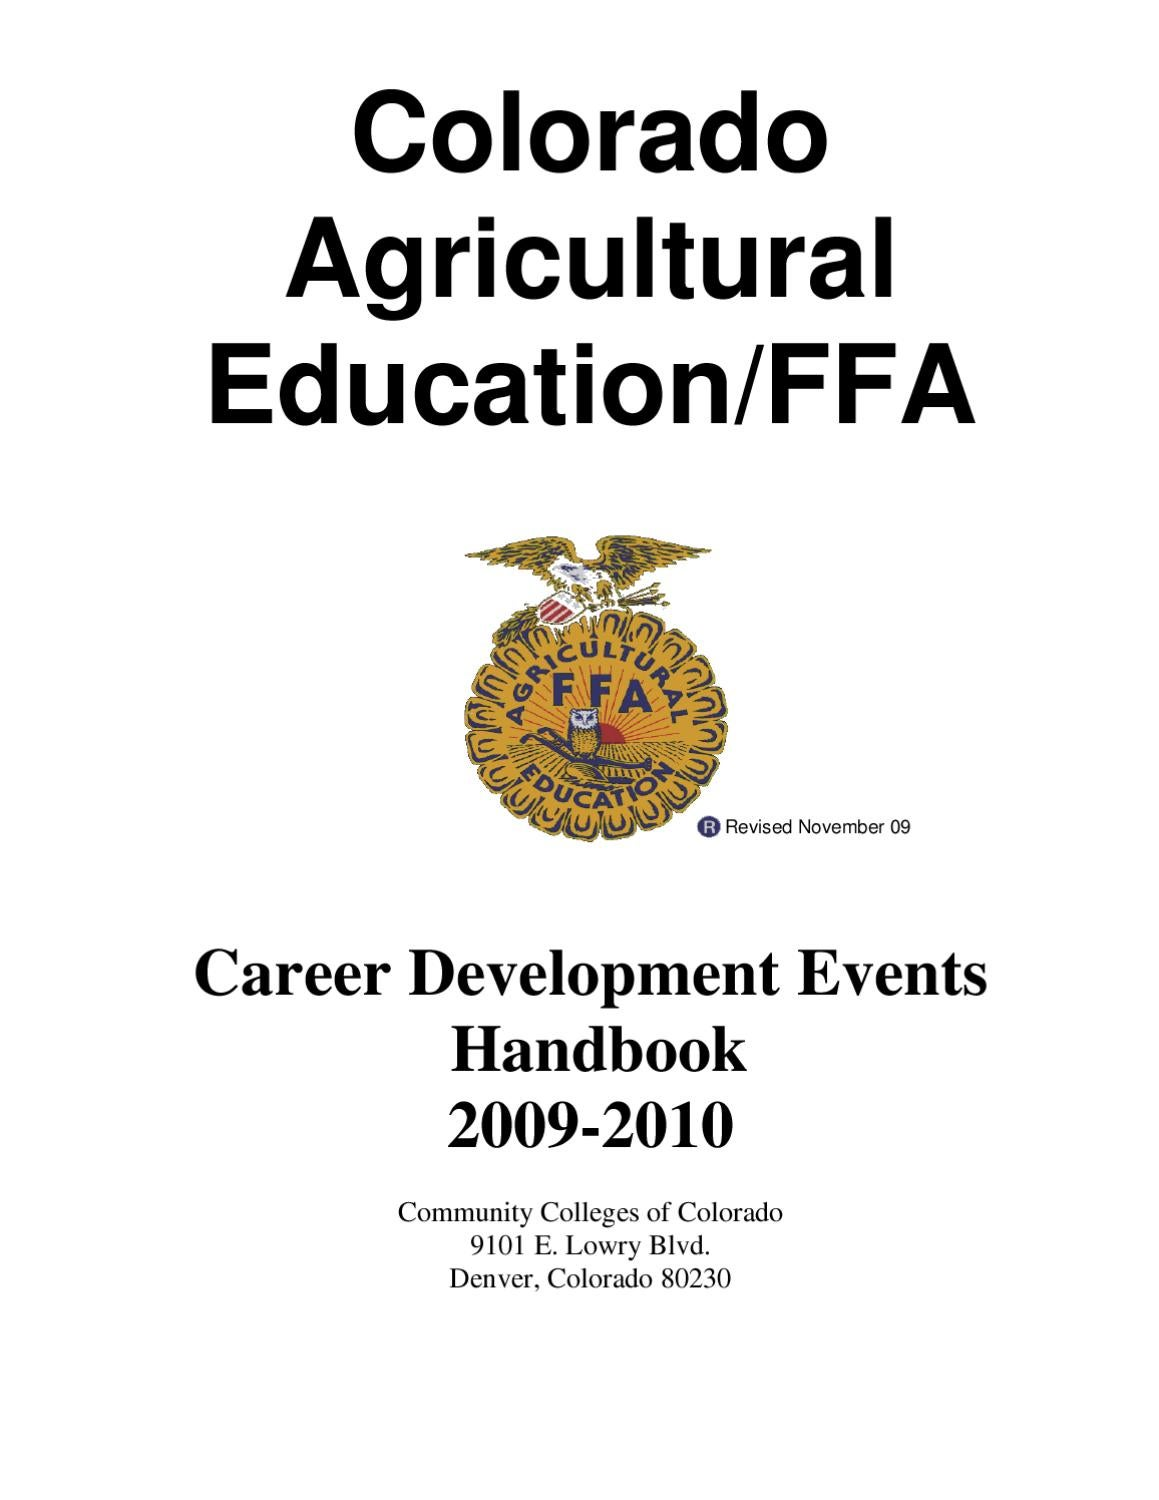 Colorado Agricultural Education / FFA CDE Handbook, 2009